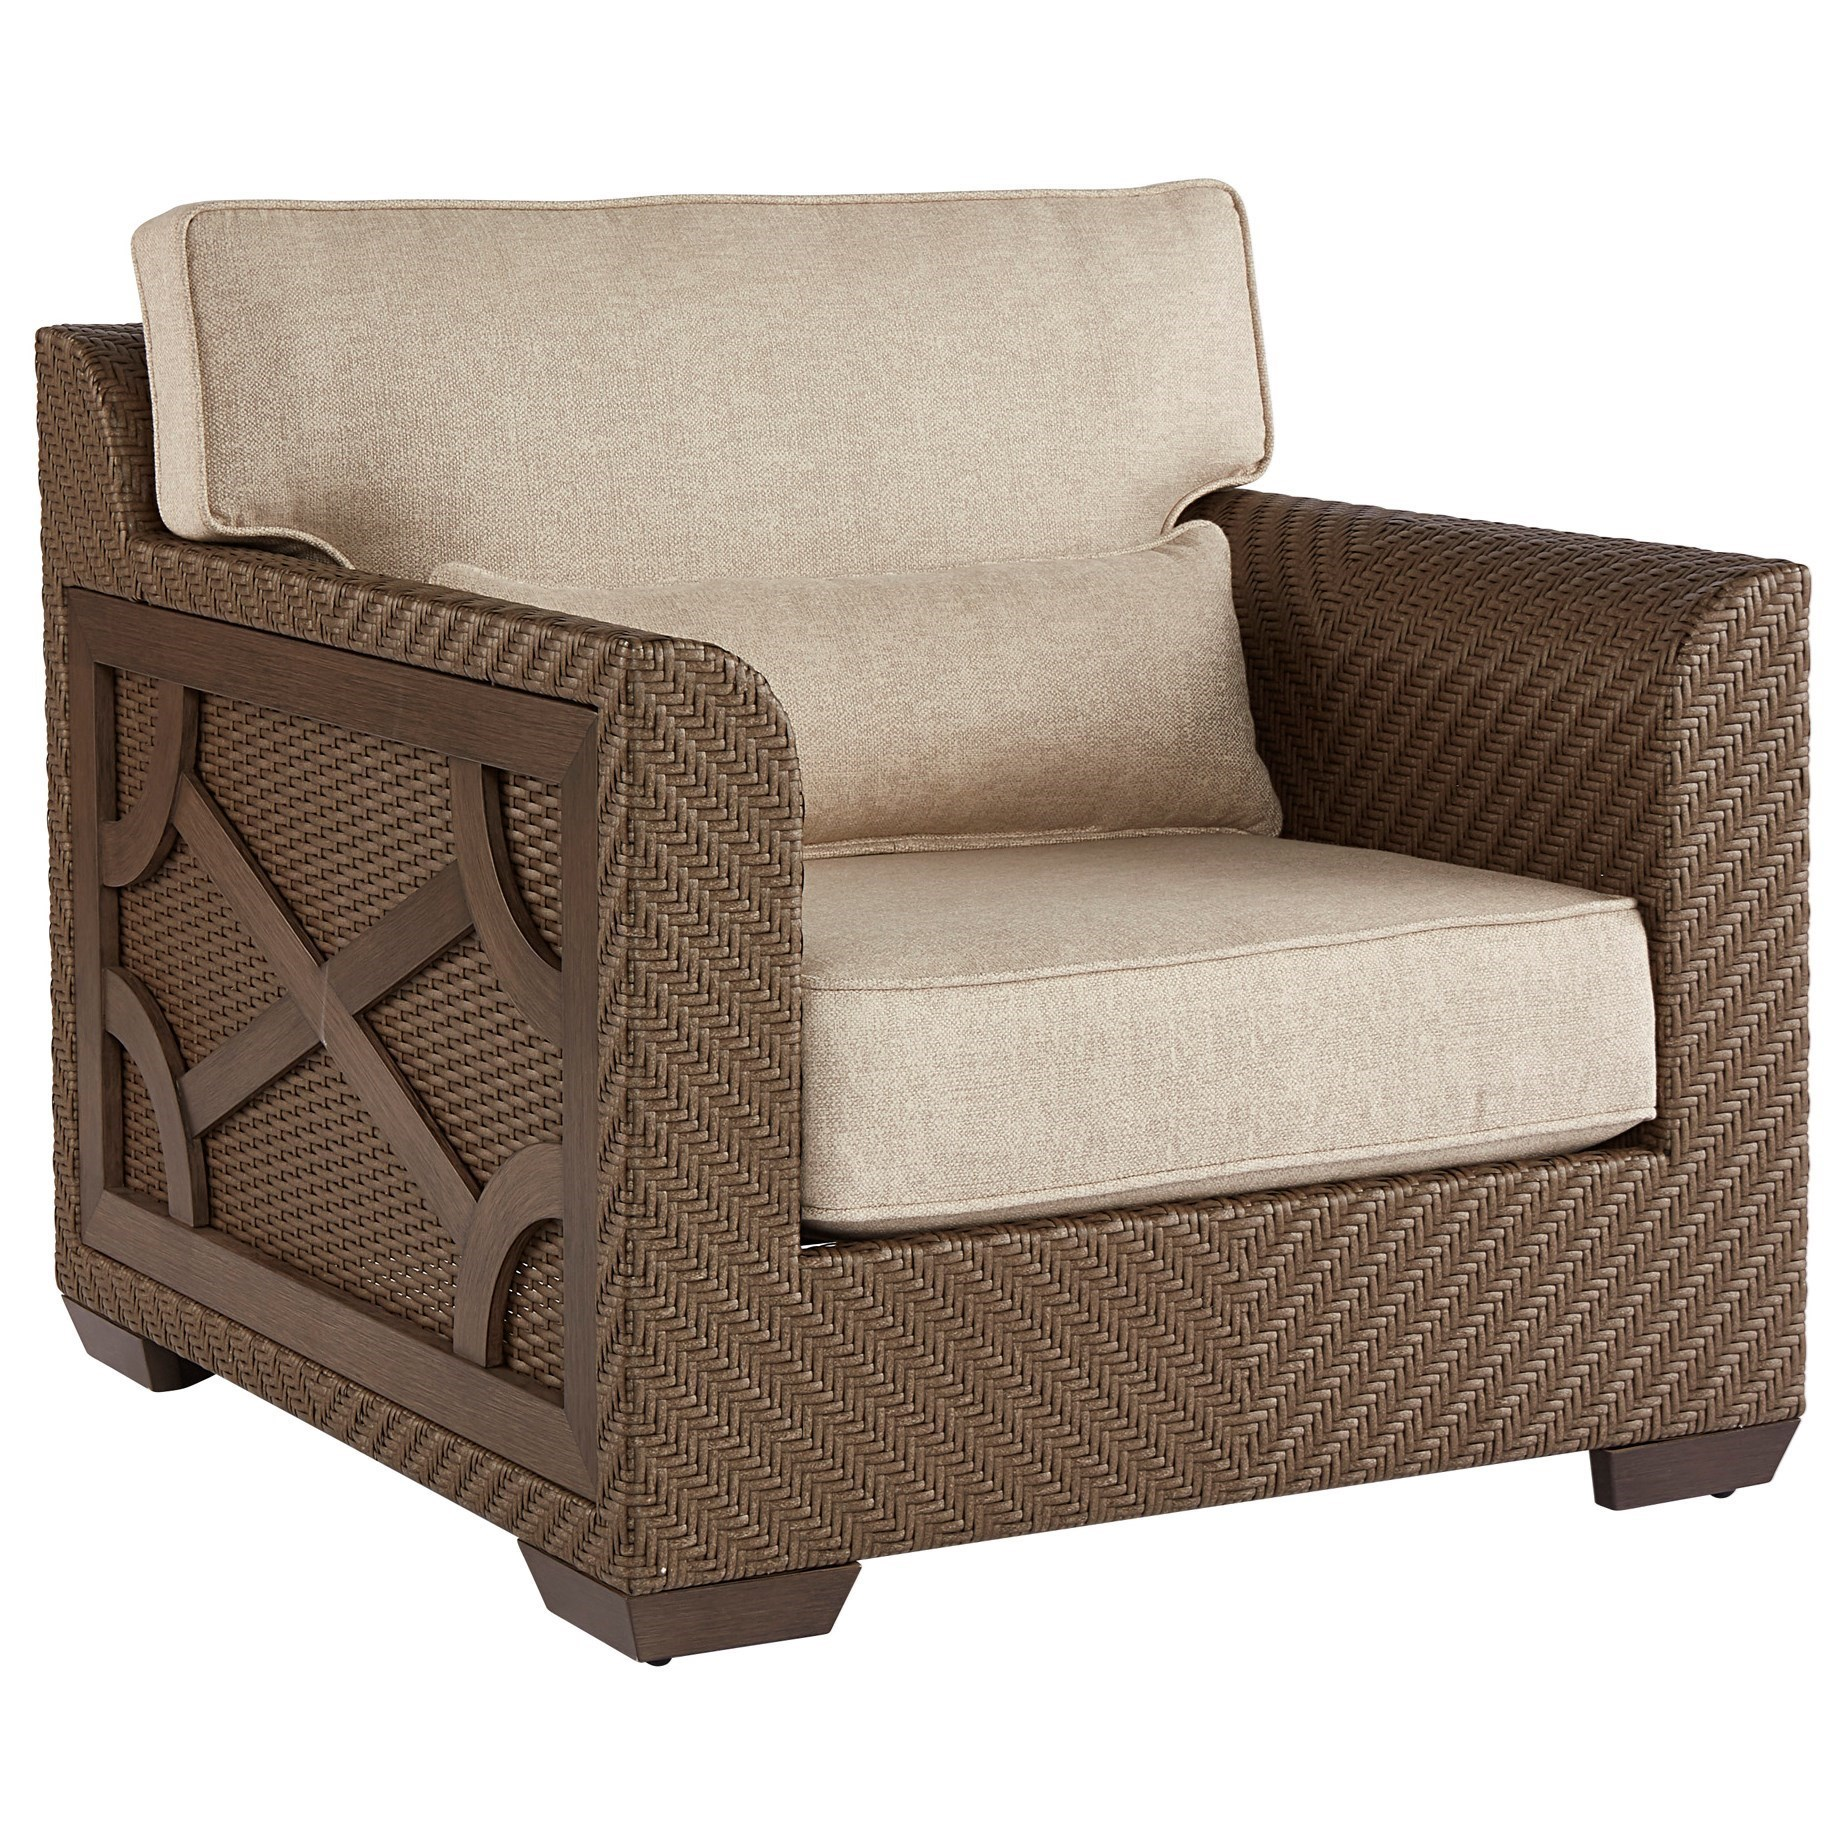 A.R.T. Furniture Inc Arch Salvage Outdoor Florence Wicker Club Chair